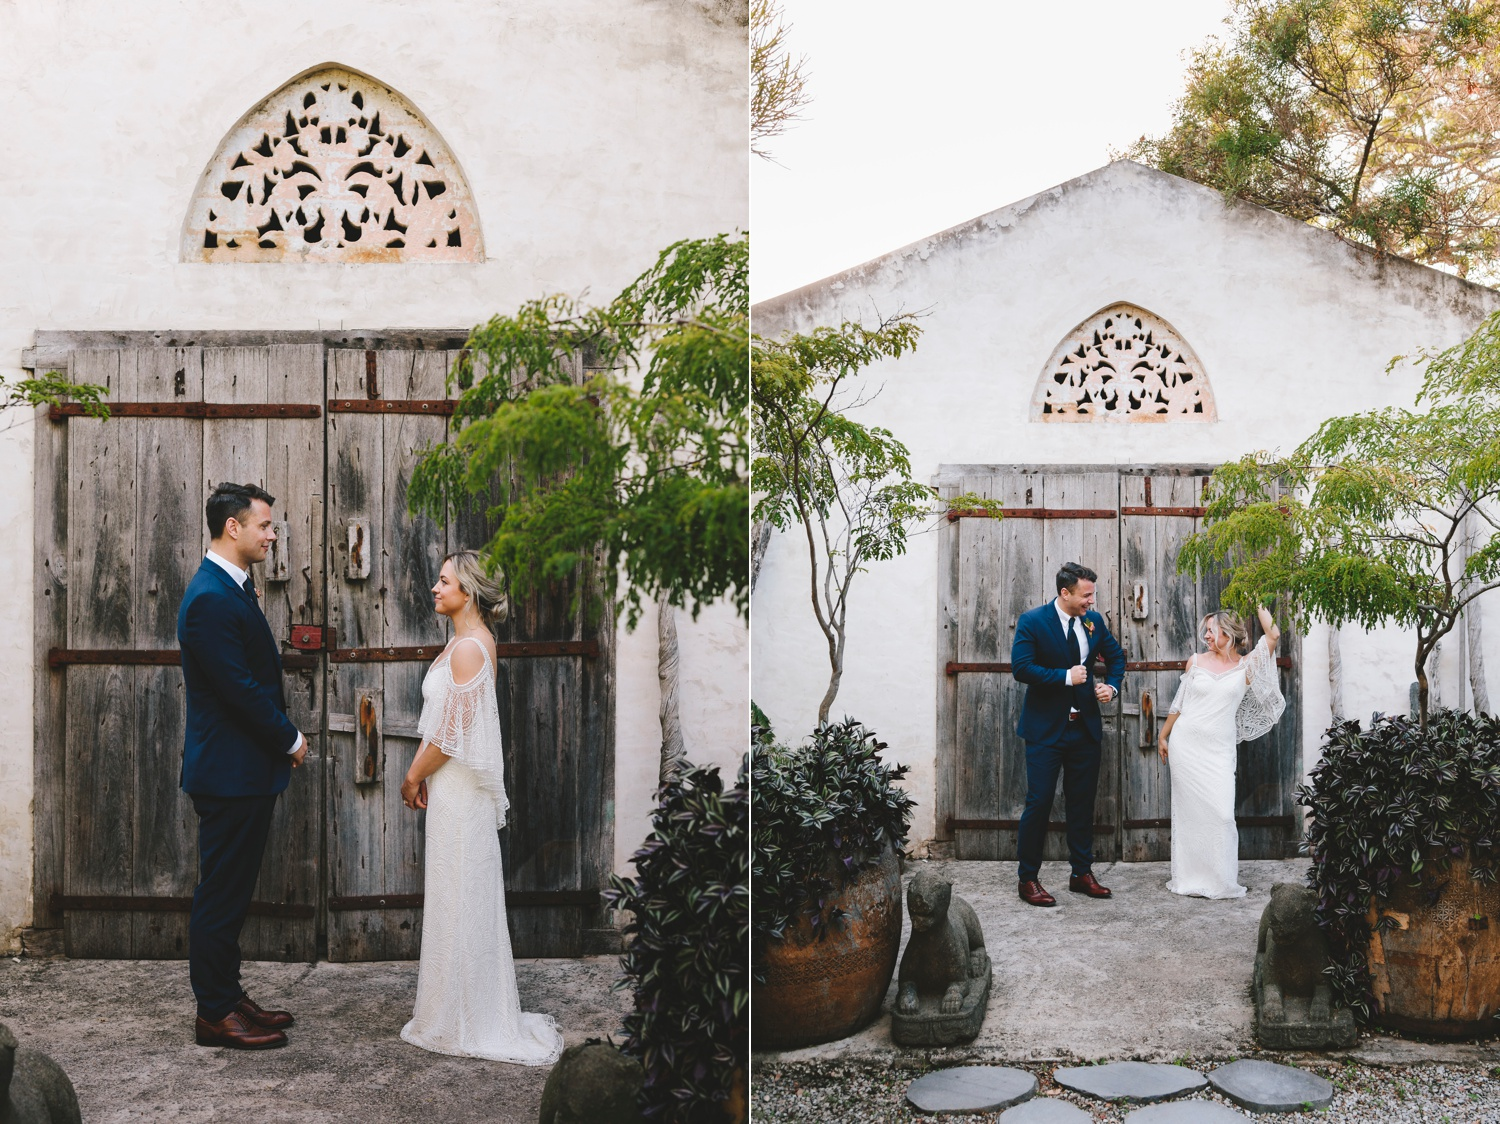 charlie_ray_photography_runaway_romance_elopement_emily_moon_plett_simple_boho_wedding_south_africa_bohemium_0077.jpg